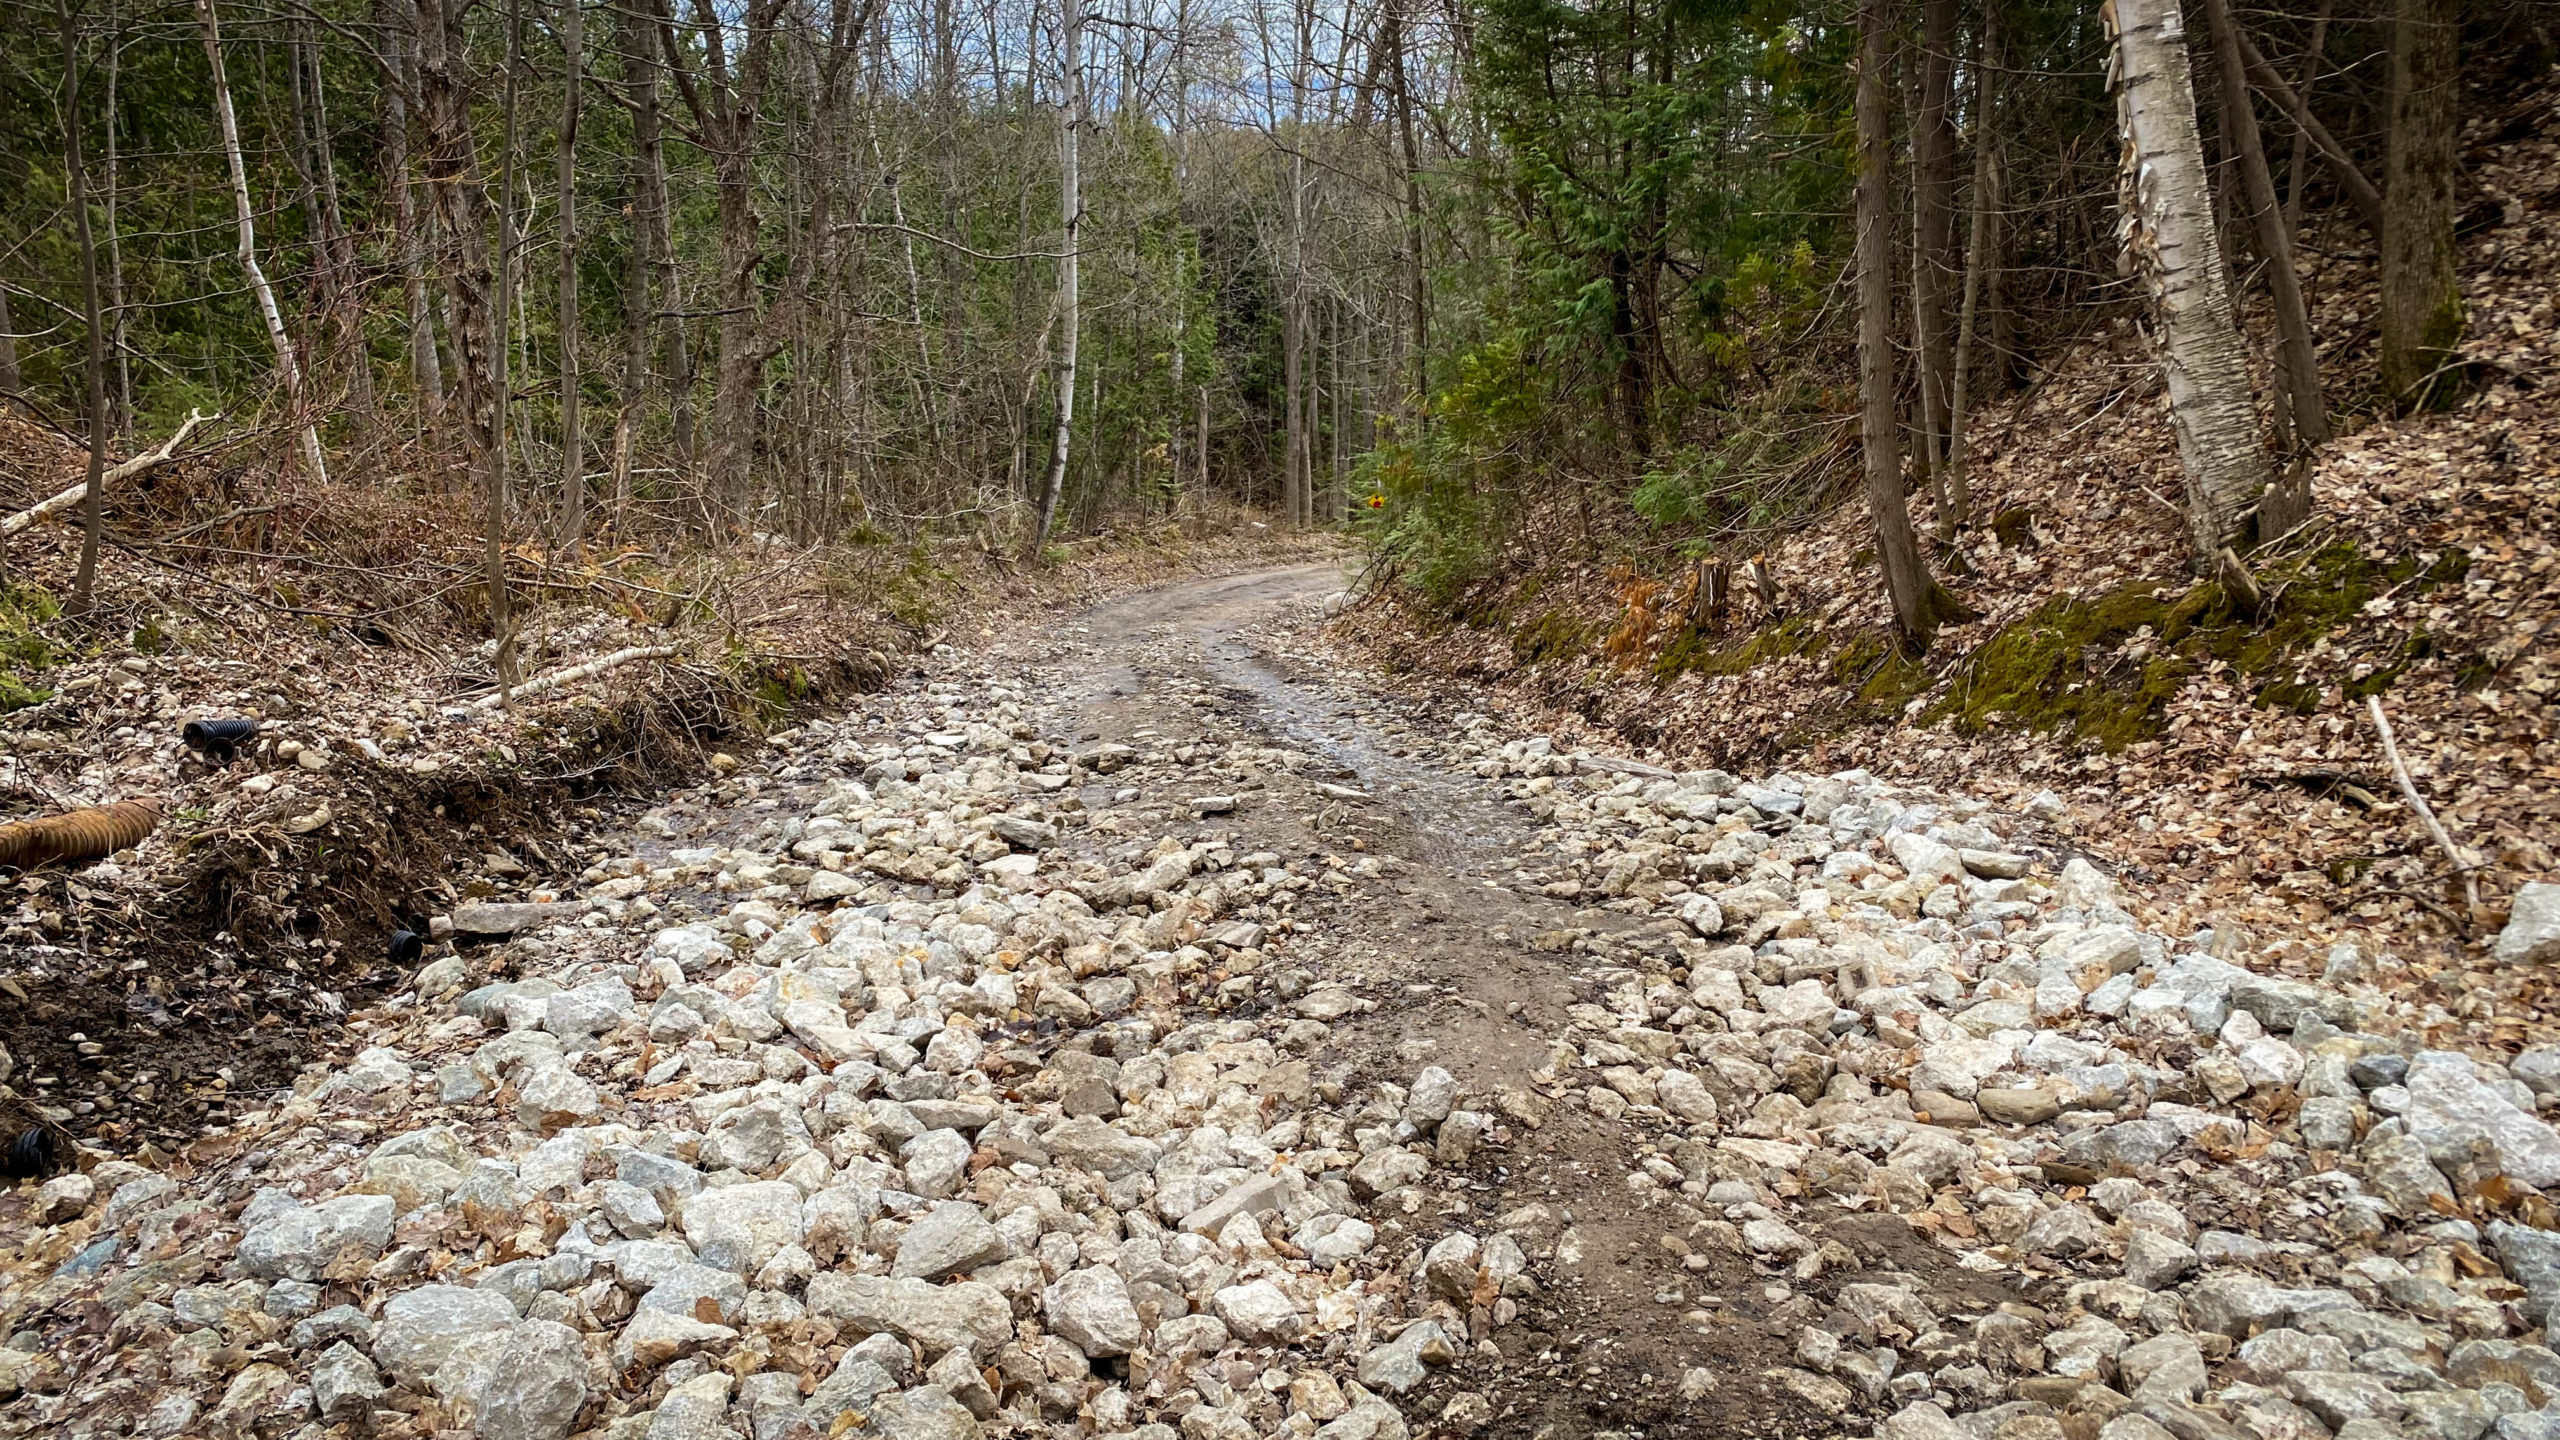 A Photo of Some Wet Slippery Rock Along 15 Side Road.